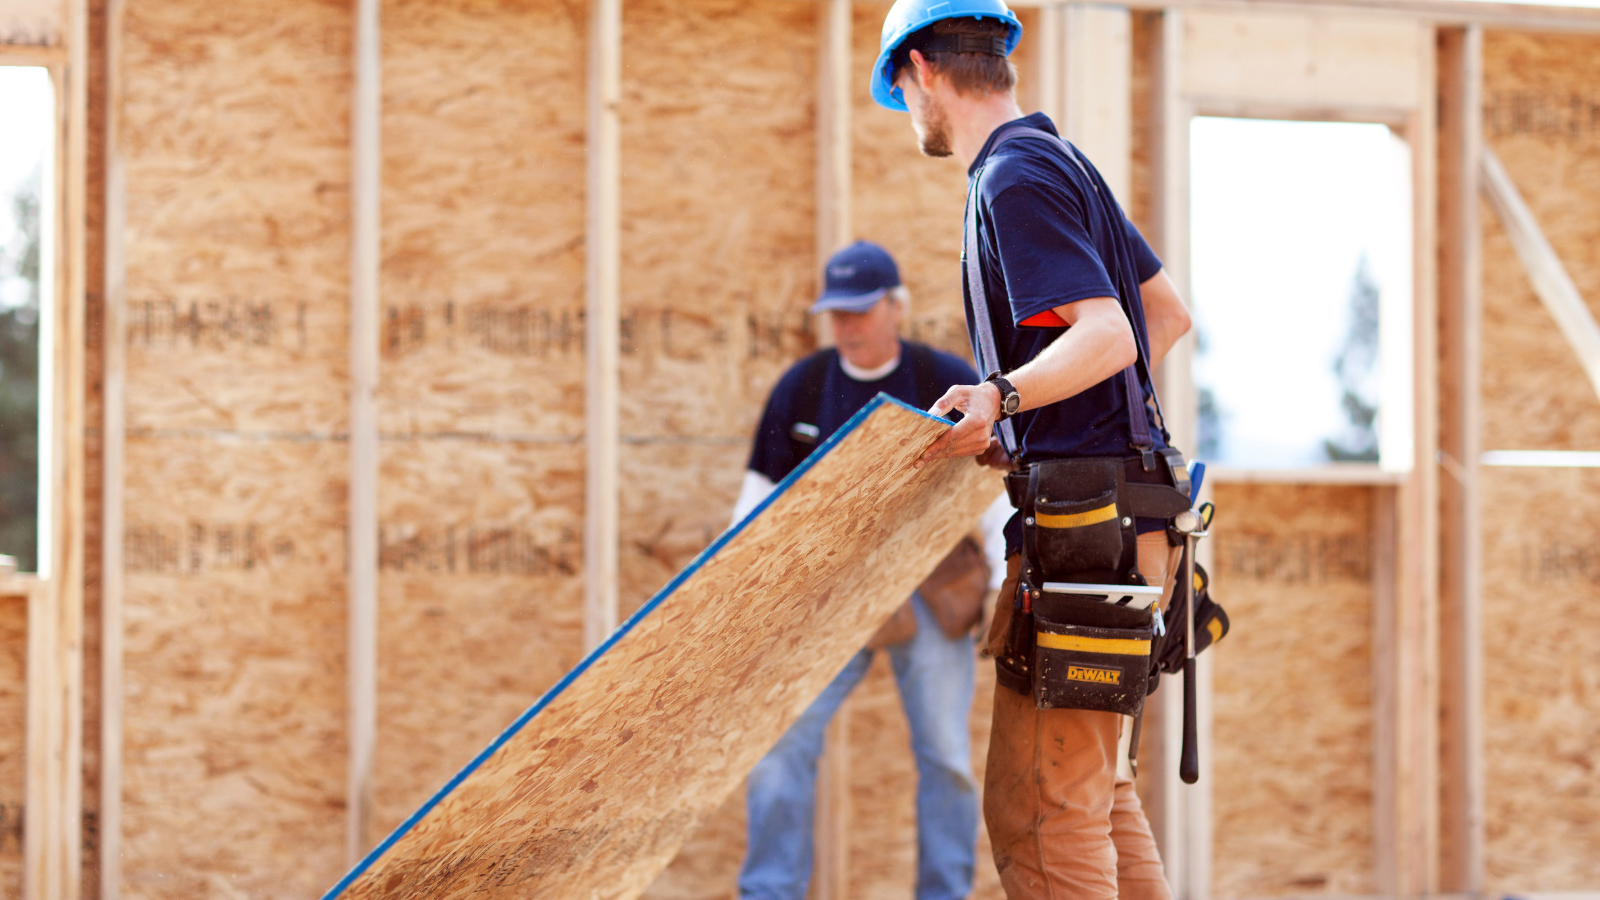 Worker holding OSB subfloor at residential construction site